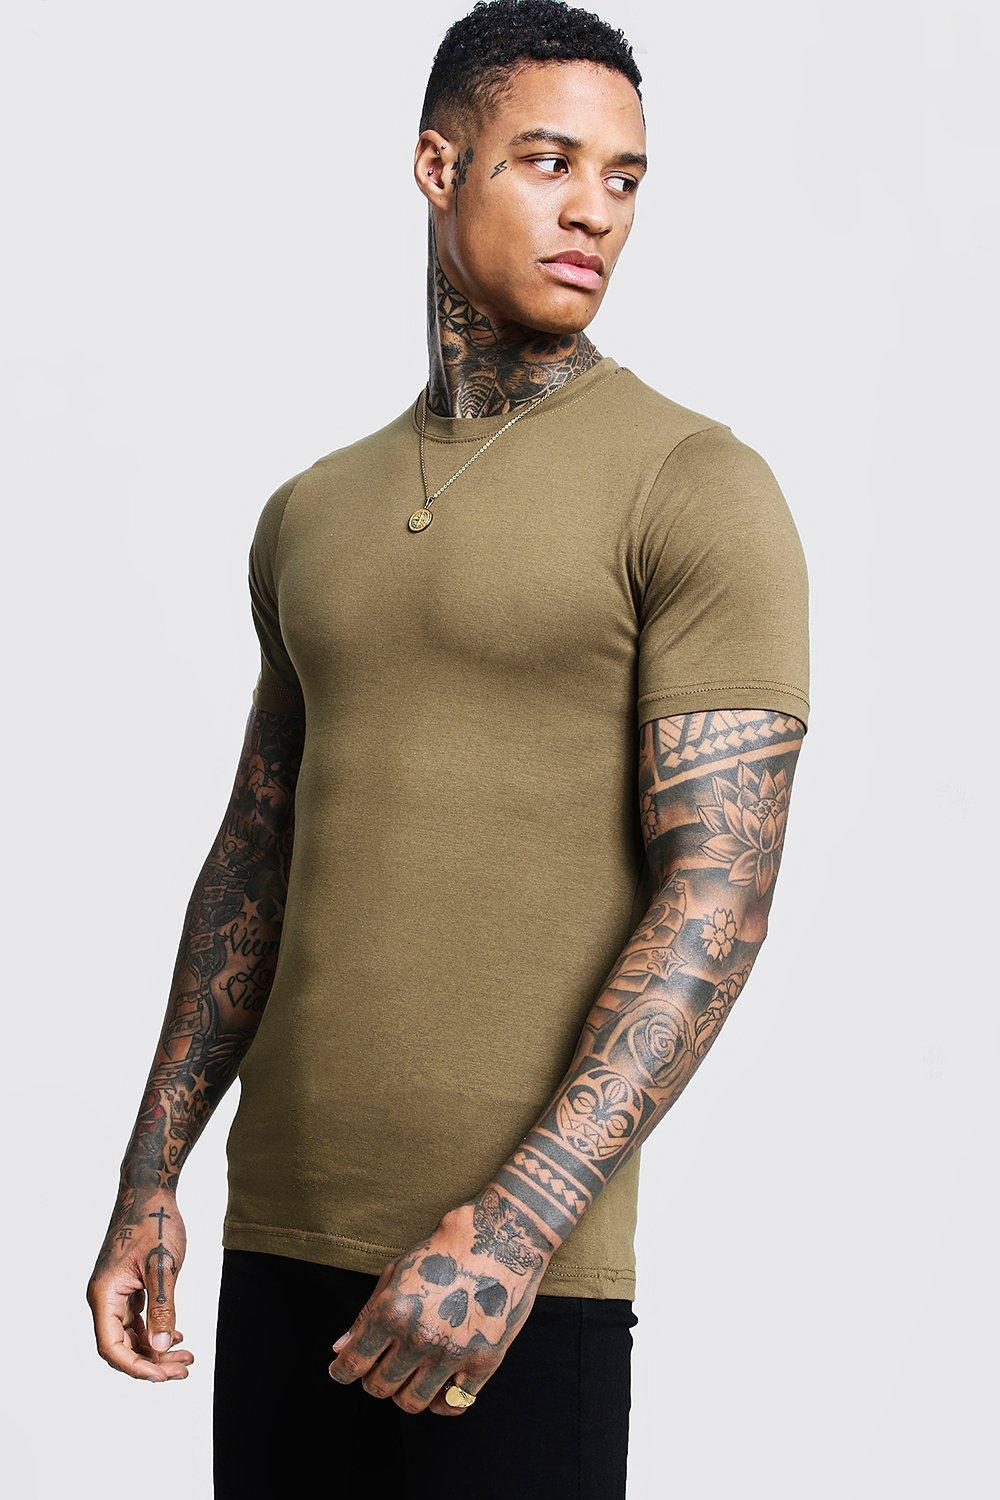 Boohoo Mens Muscle Fit Crew Neck T Shirt Ebay